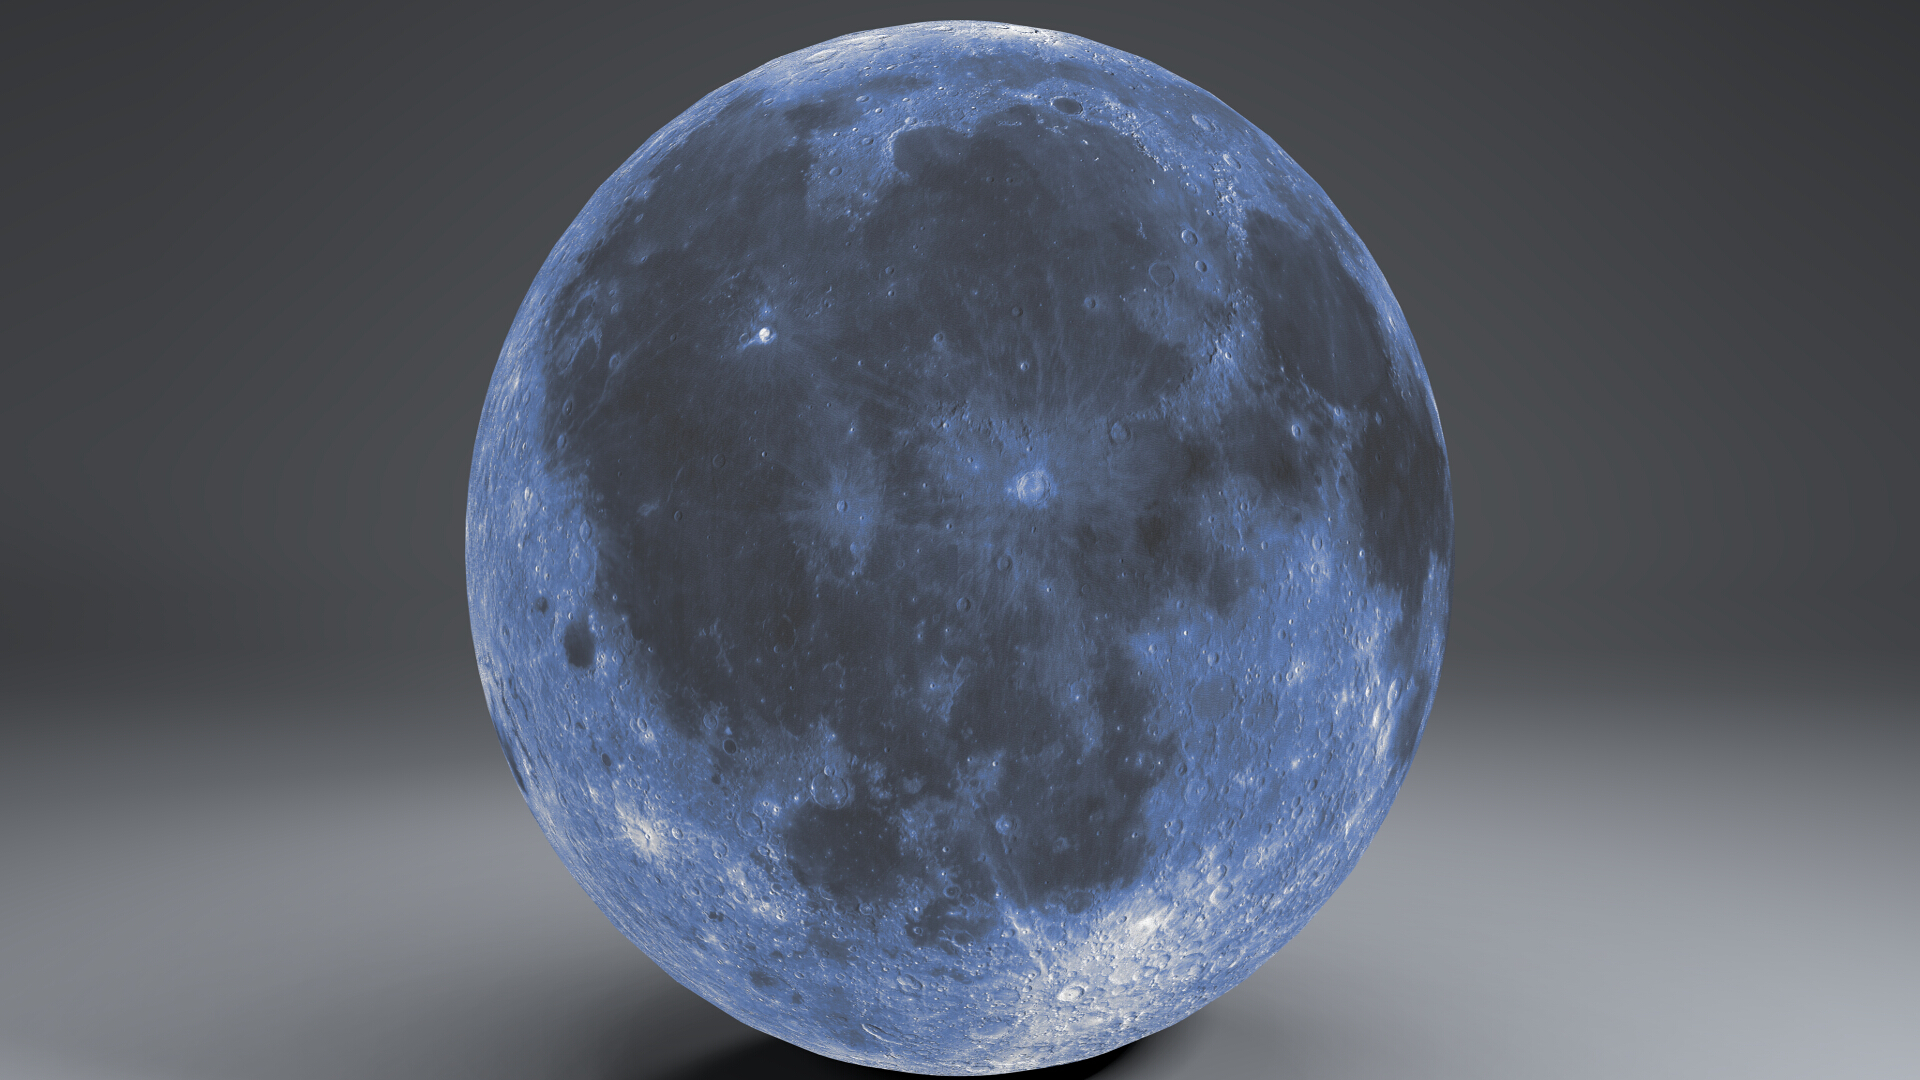 blue moonglobe 11k 3d model 3ds fbx blend dae obj 221886